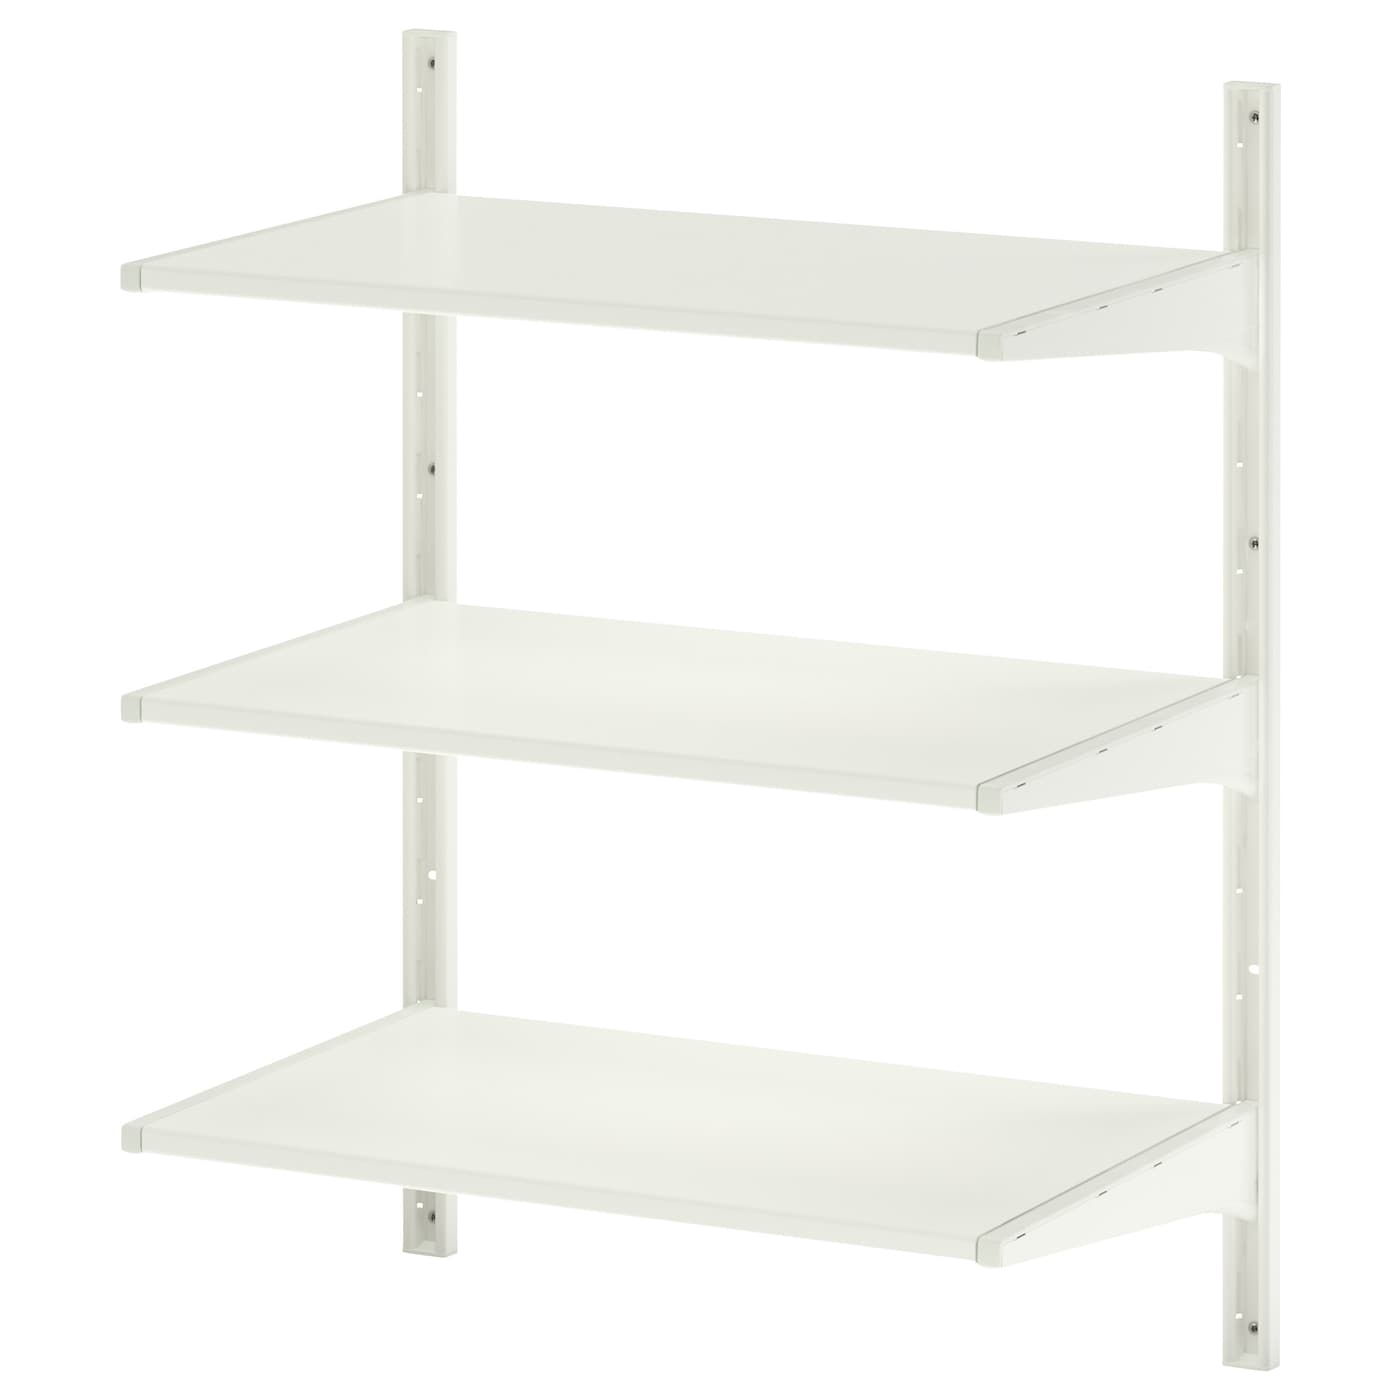 algot wall upright shelves white 65 x 40 x 84 cm ikea. Black Bedroom Furniture Sets. Home Design Ideas